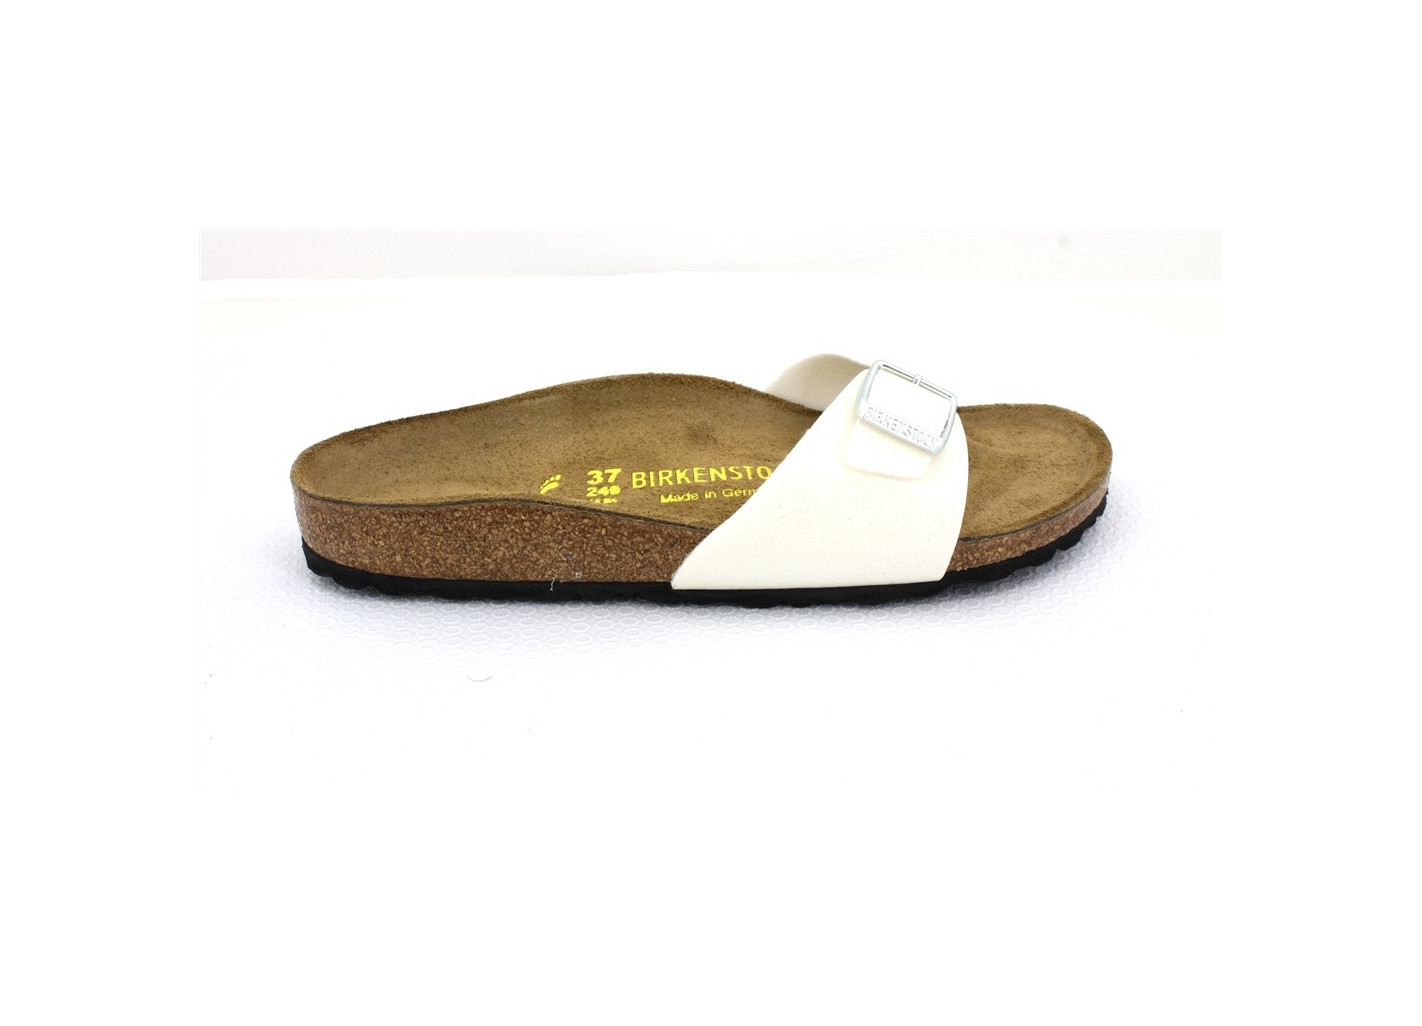 BIRKENSTOCK MULES MADRID FEMME BIRKO-FLOR® - MAGIC-WEISS----- CHAUSSURES ADULTES